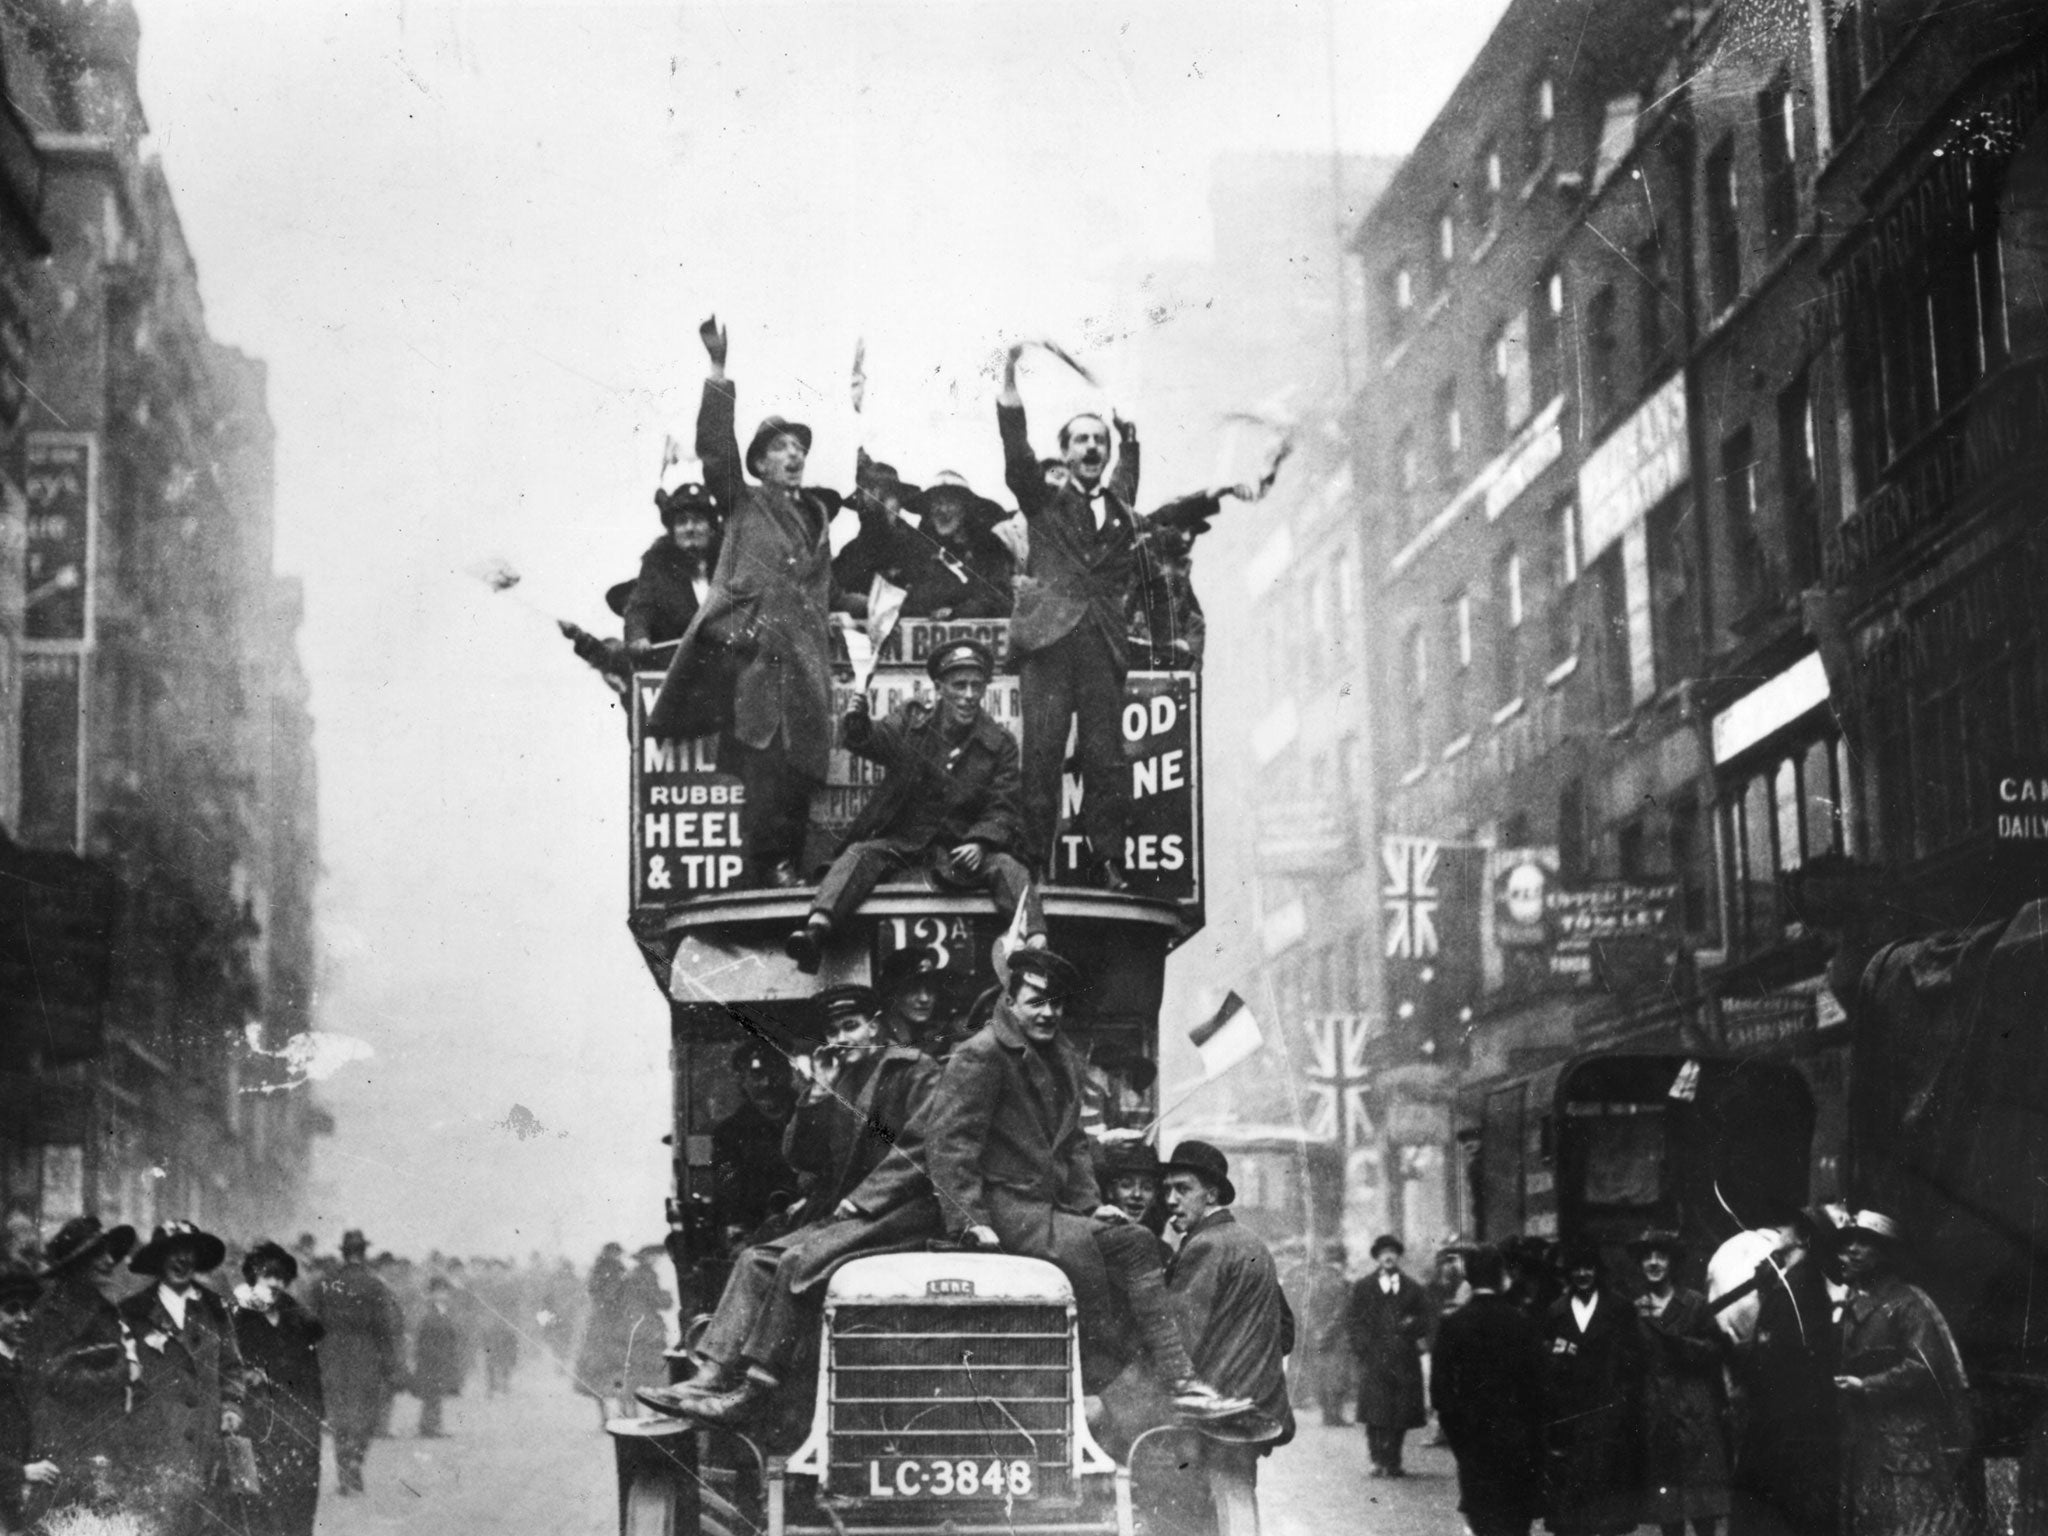 A History of the First World War in 100 moments After 1 560 days